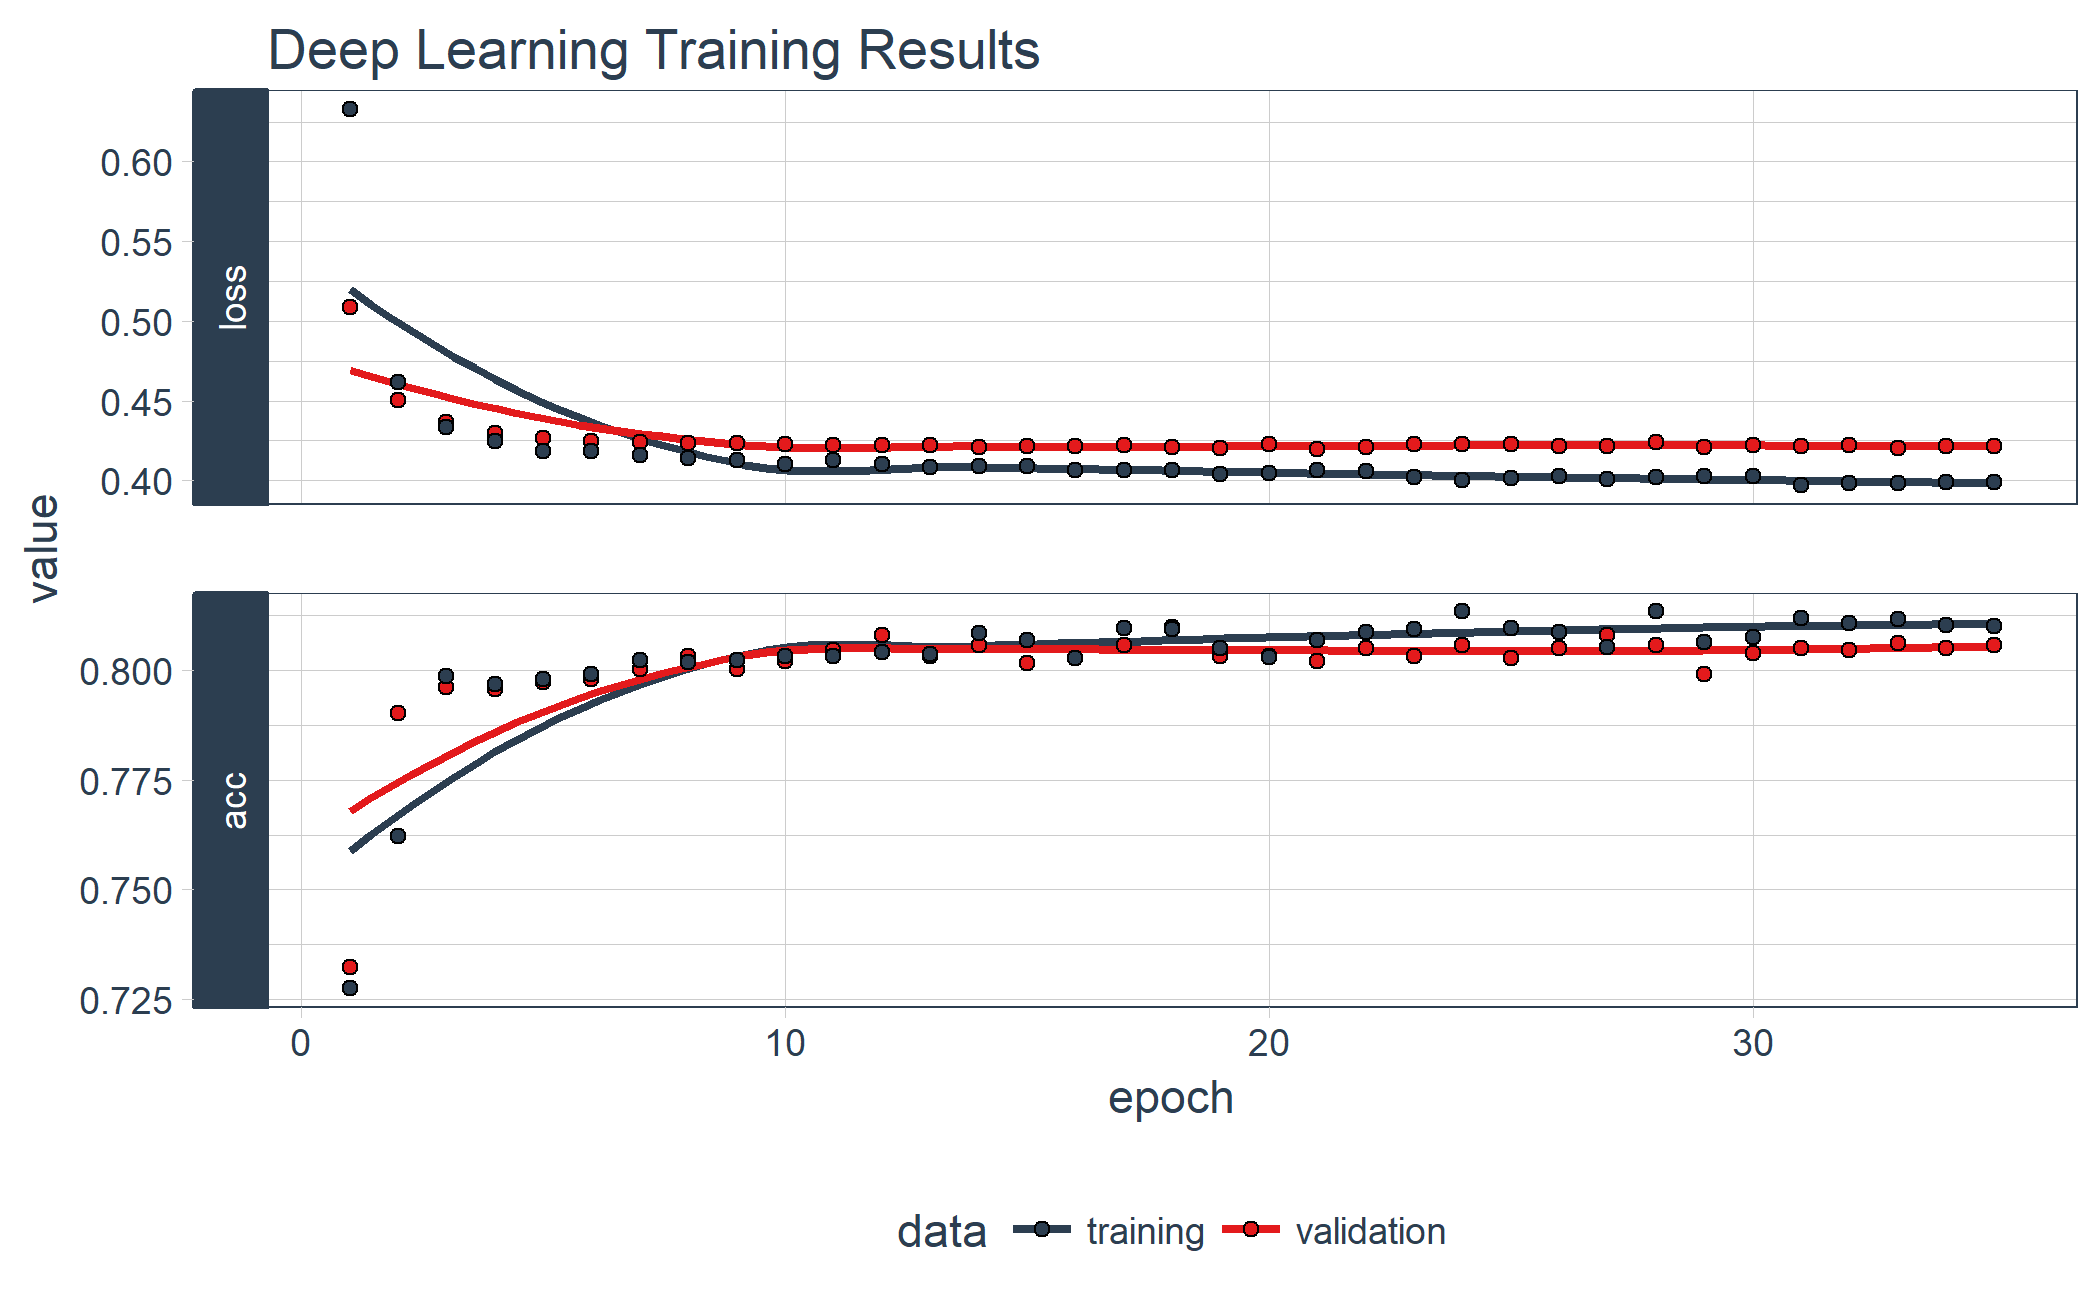 Deep Learning Training History